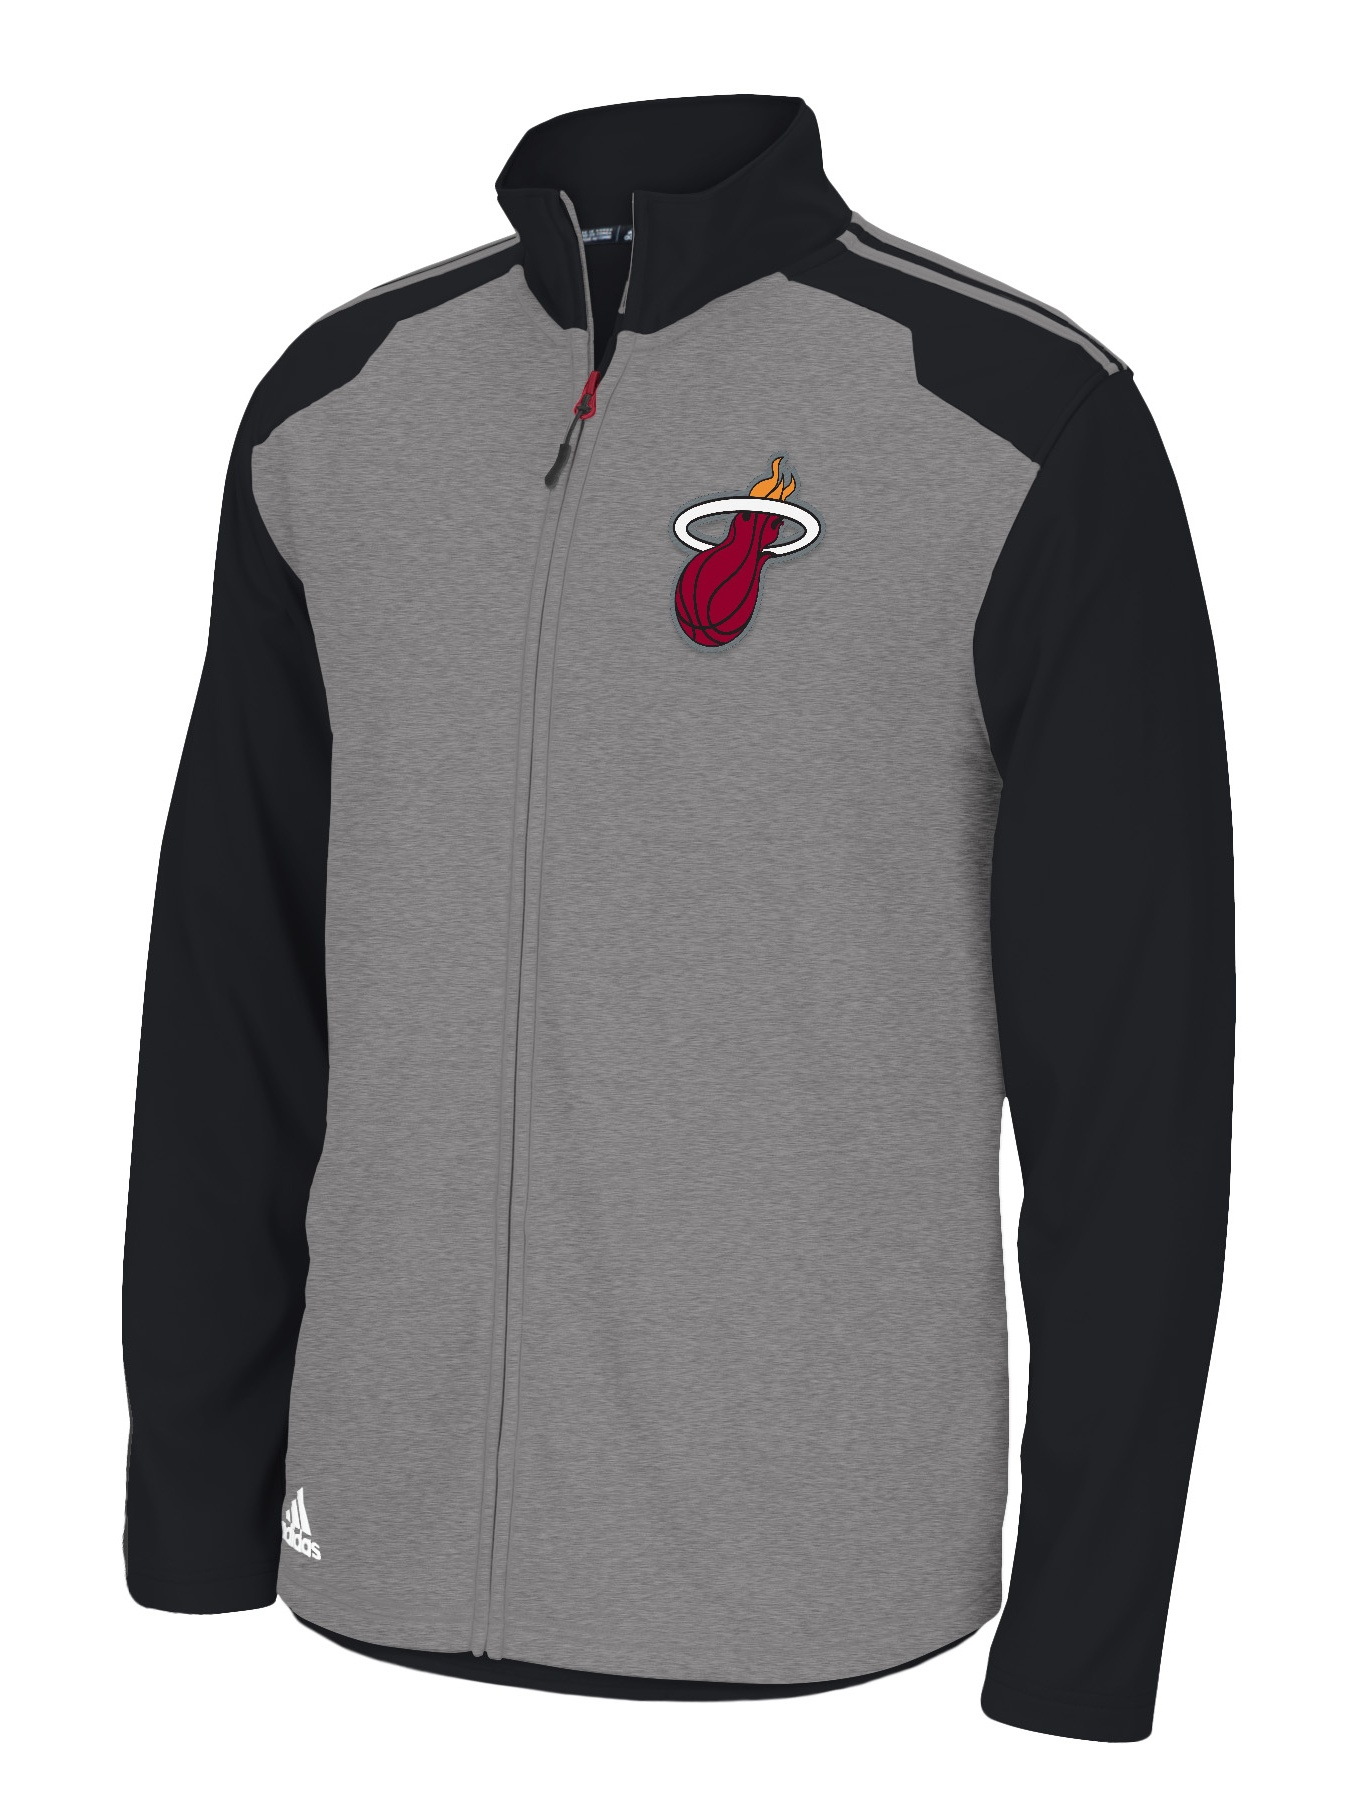 Miami Heat Adidas 2014 NBA Climawarm Full Zip Men's Fleece Jacket by Adidas